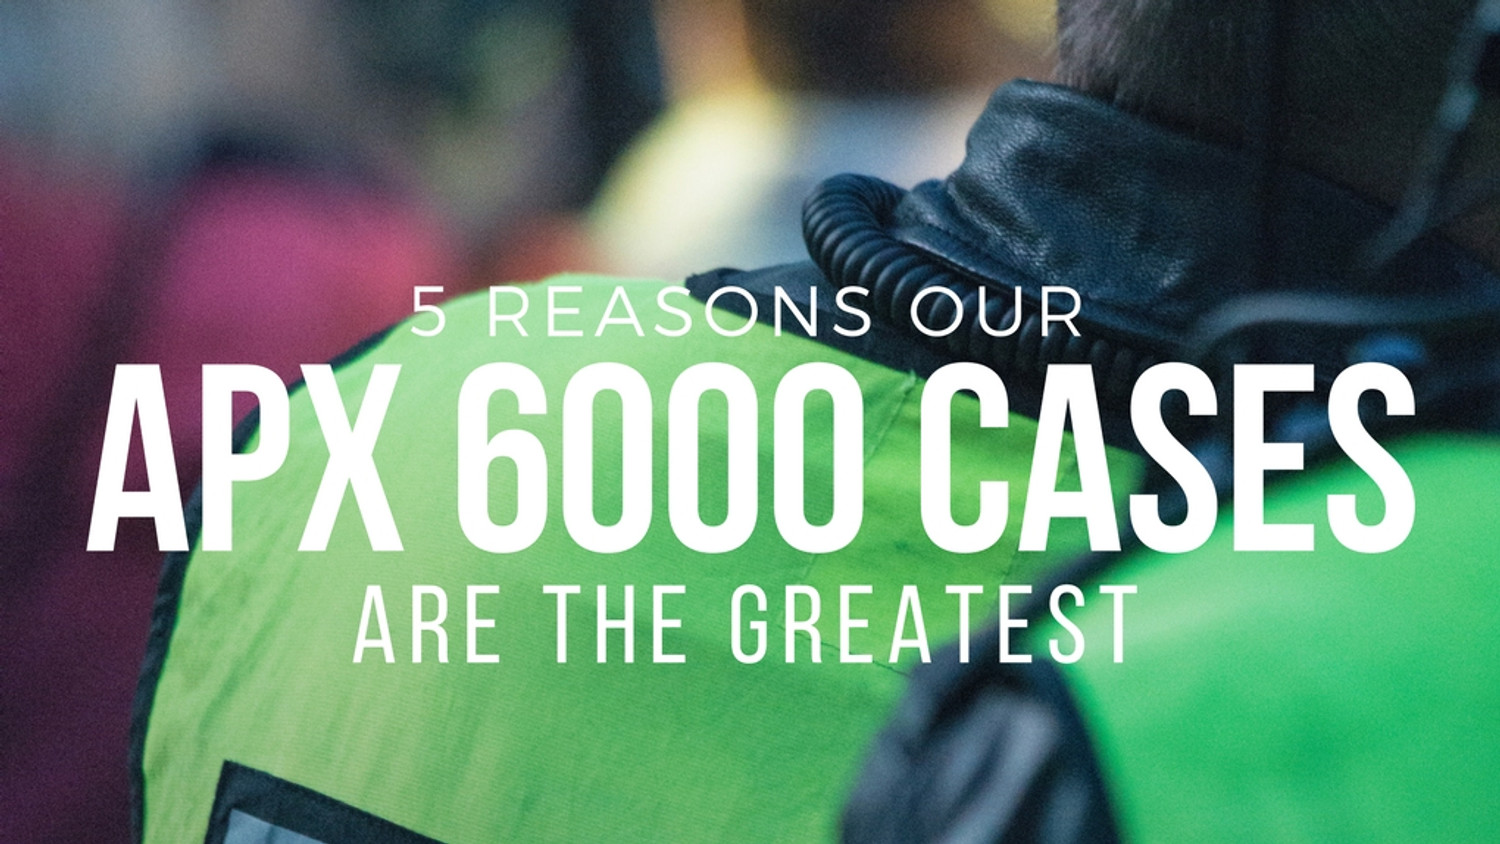 5 Reasons our APX 6000 Cases are the Greatest